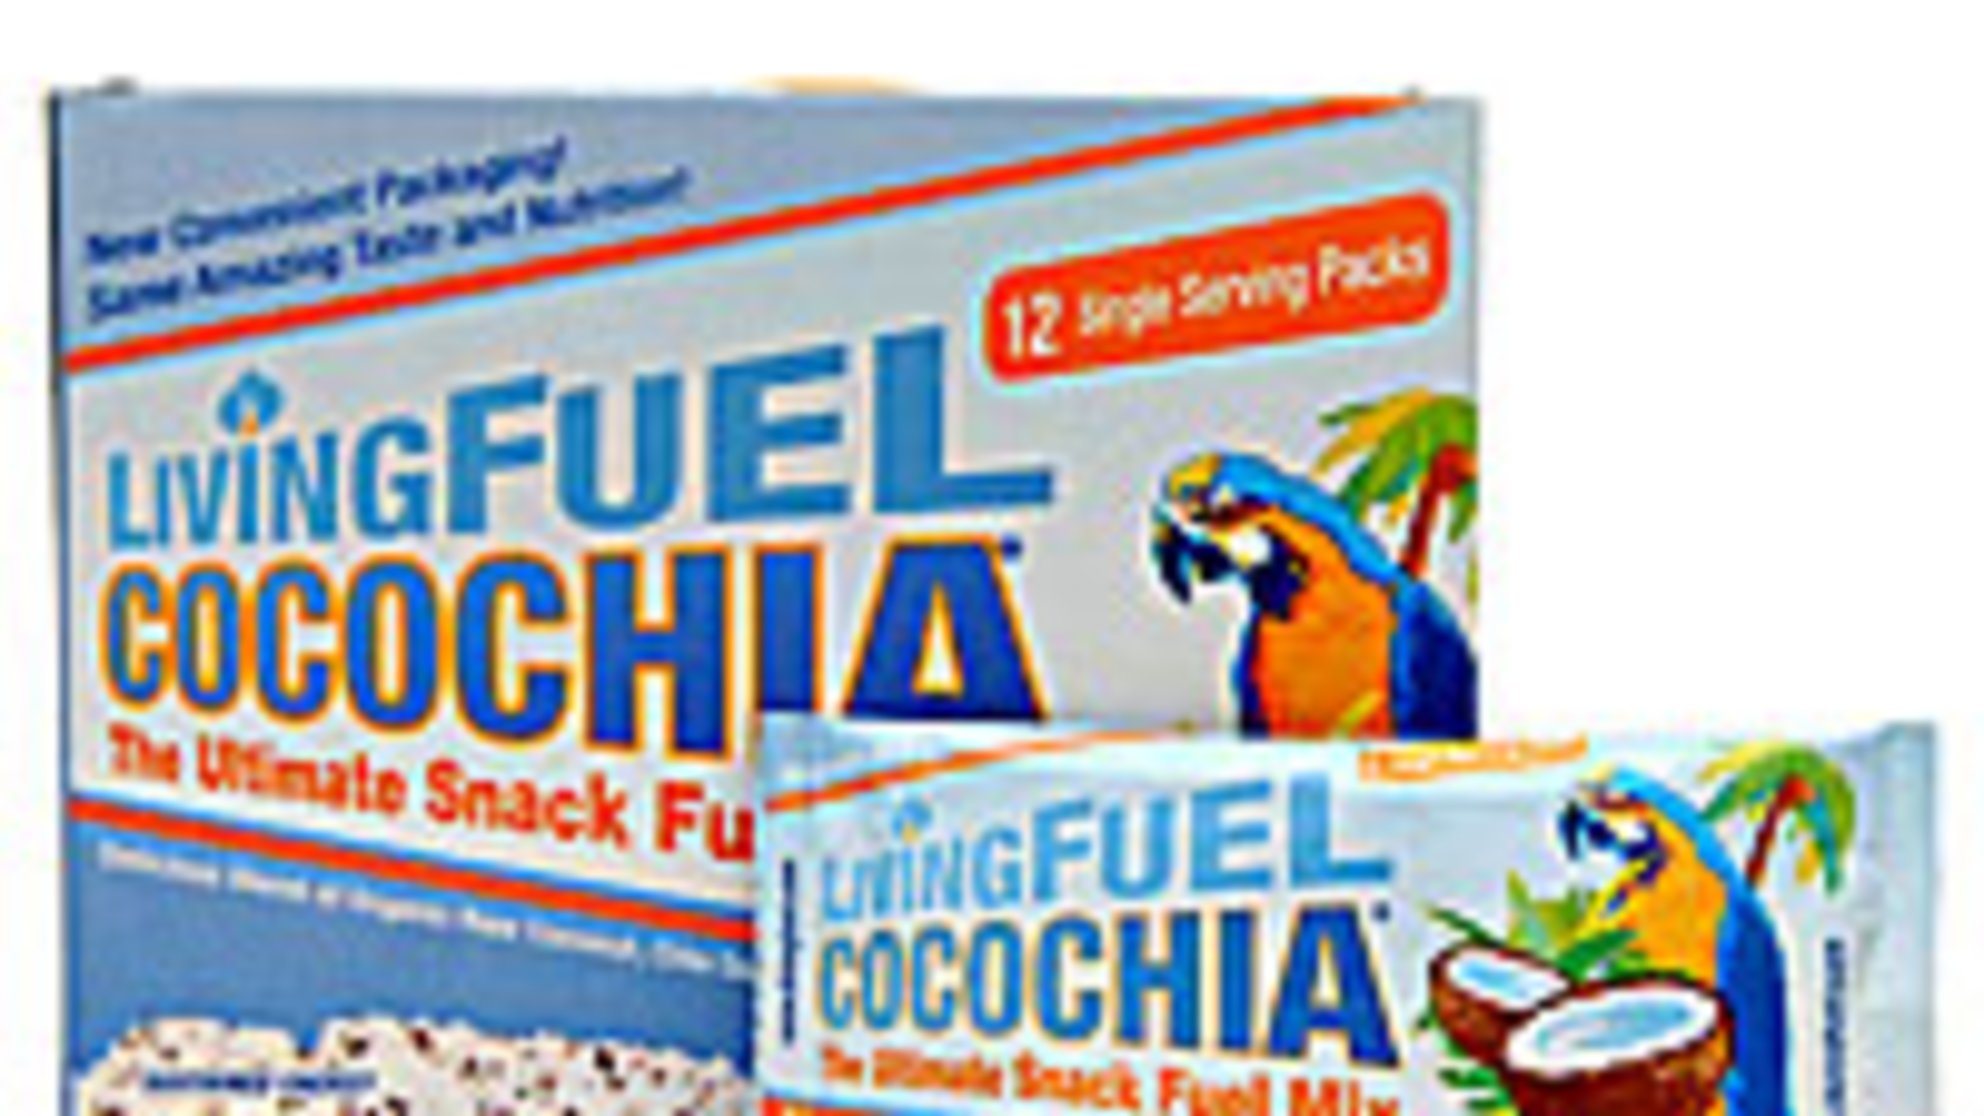 Foodie Friday: Living Fuel CocoChia Snack Mix